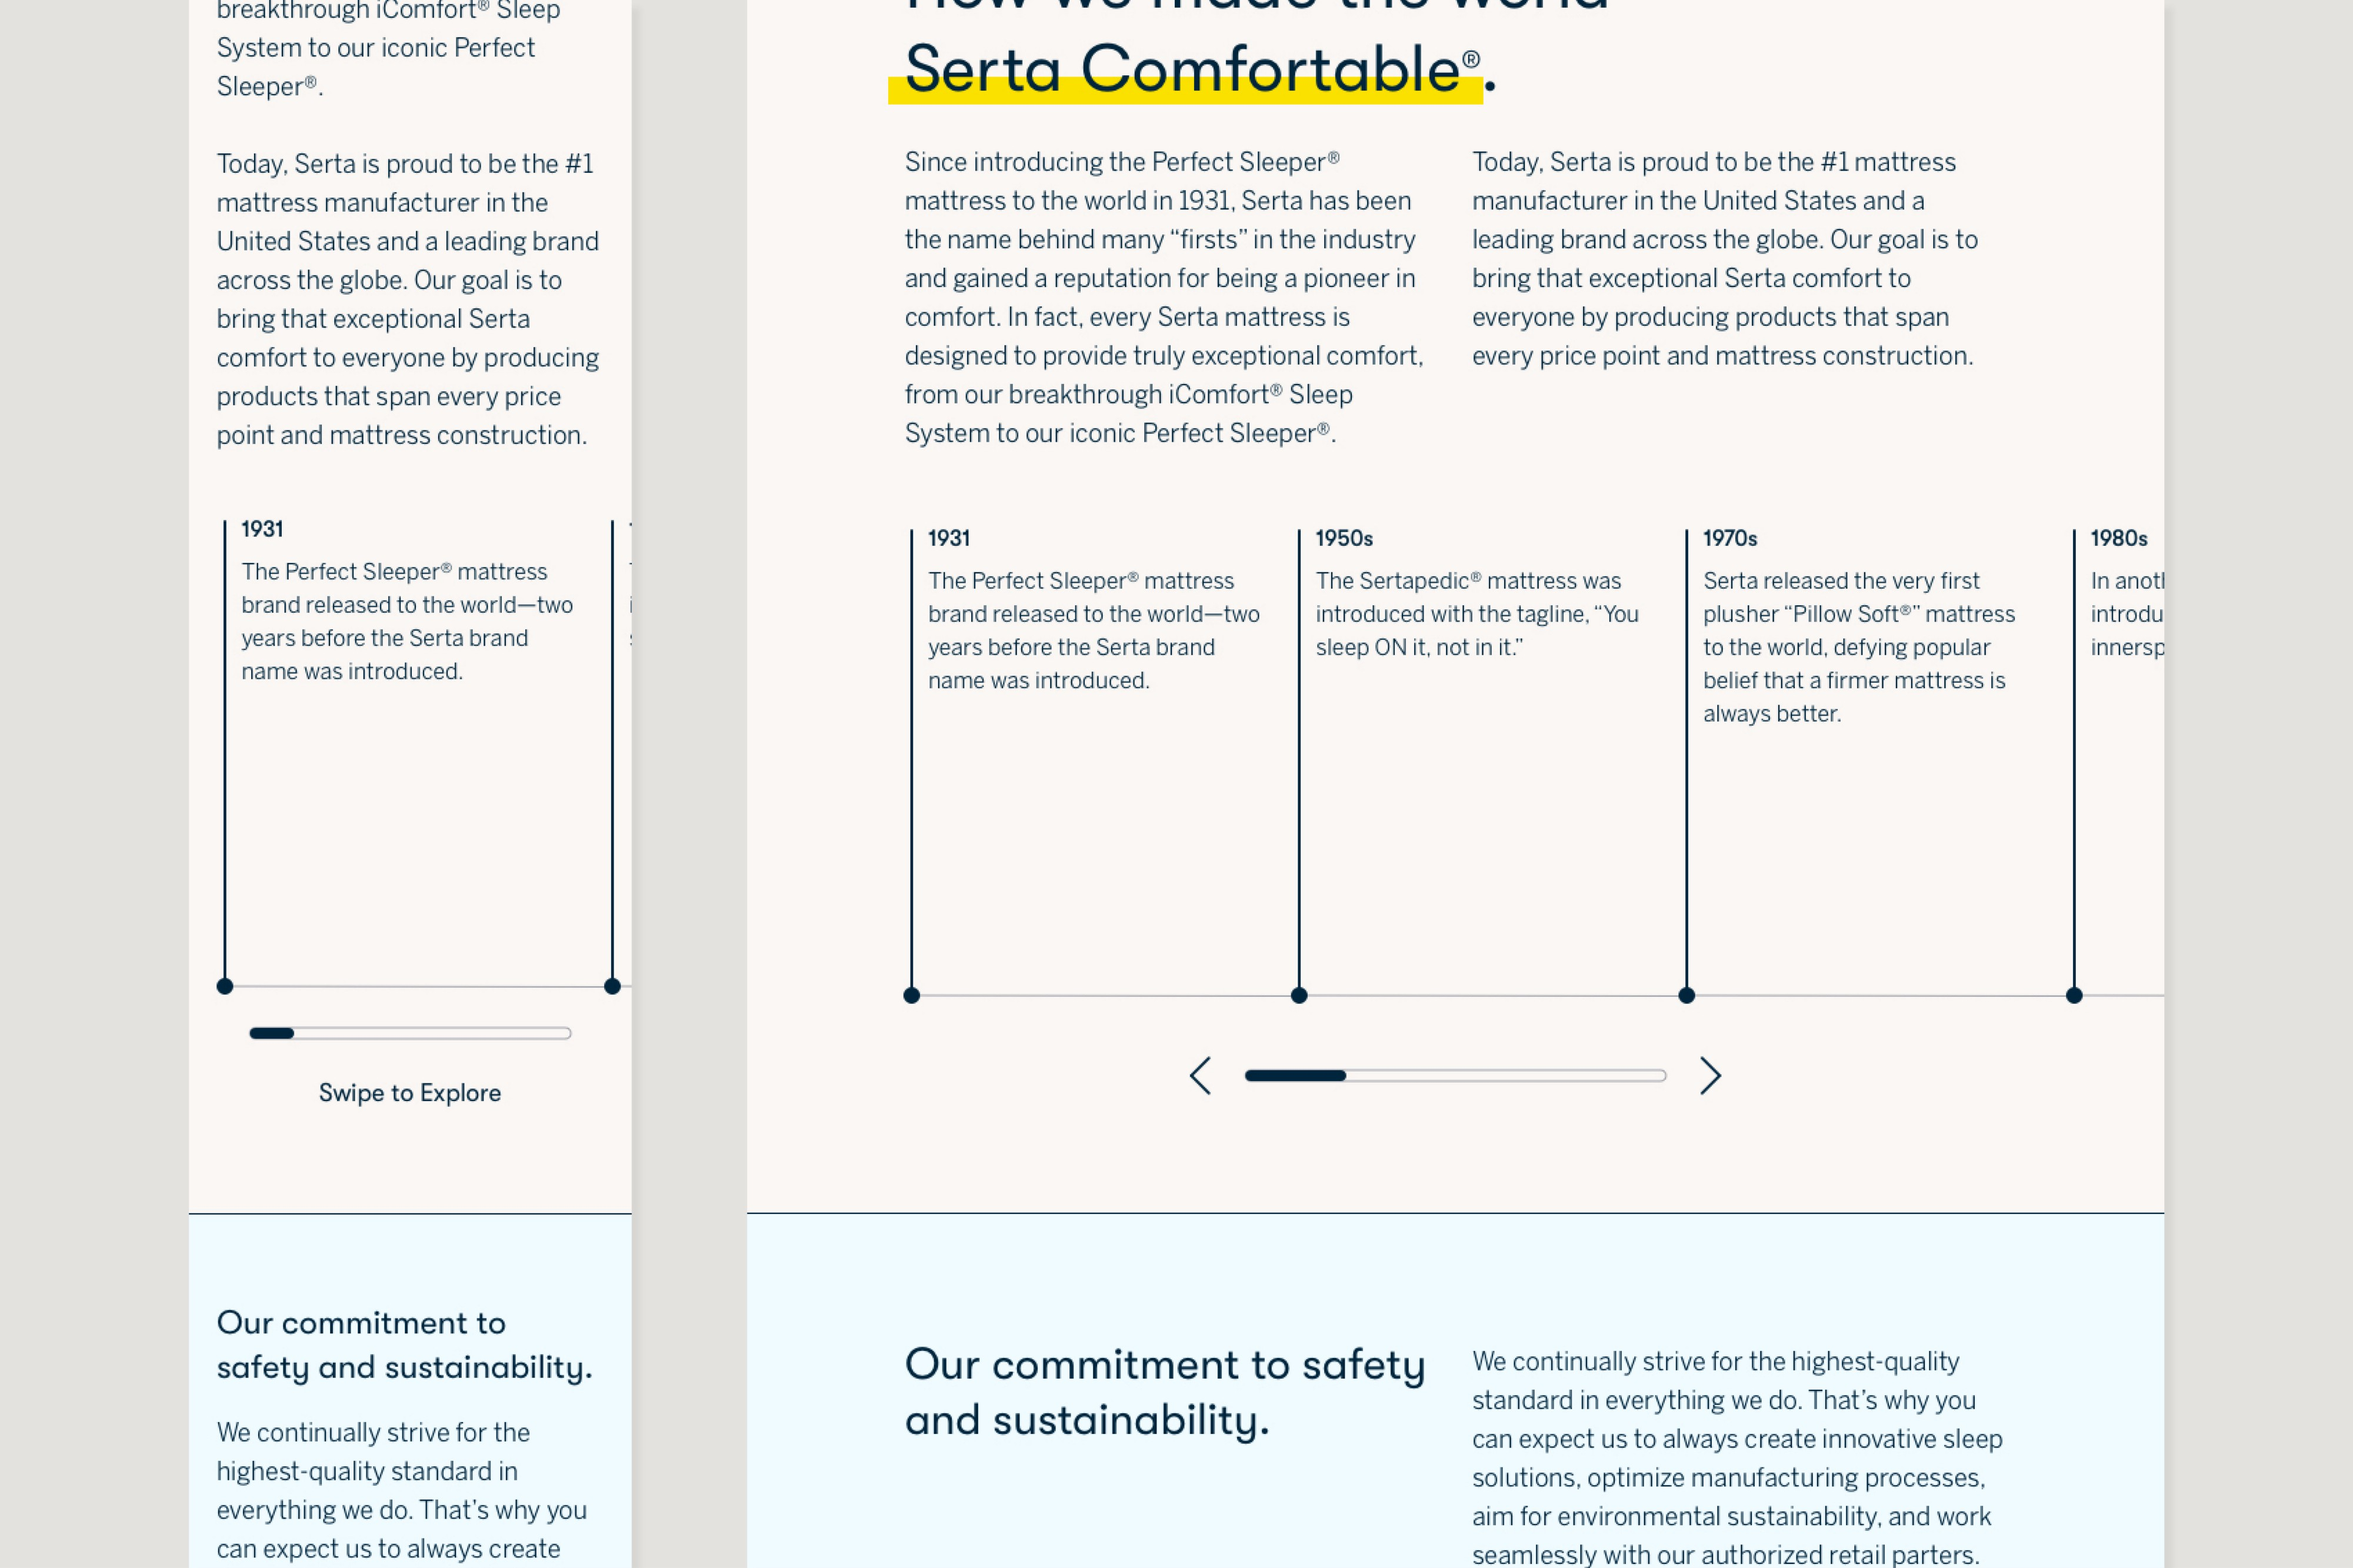 Cropped comp of the About page showing a horizontal scrolling timeline of individual text blocks.